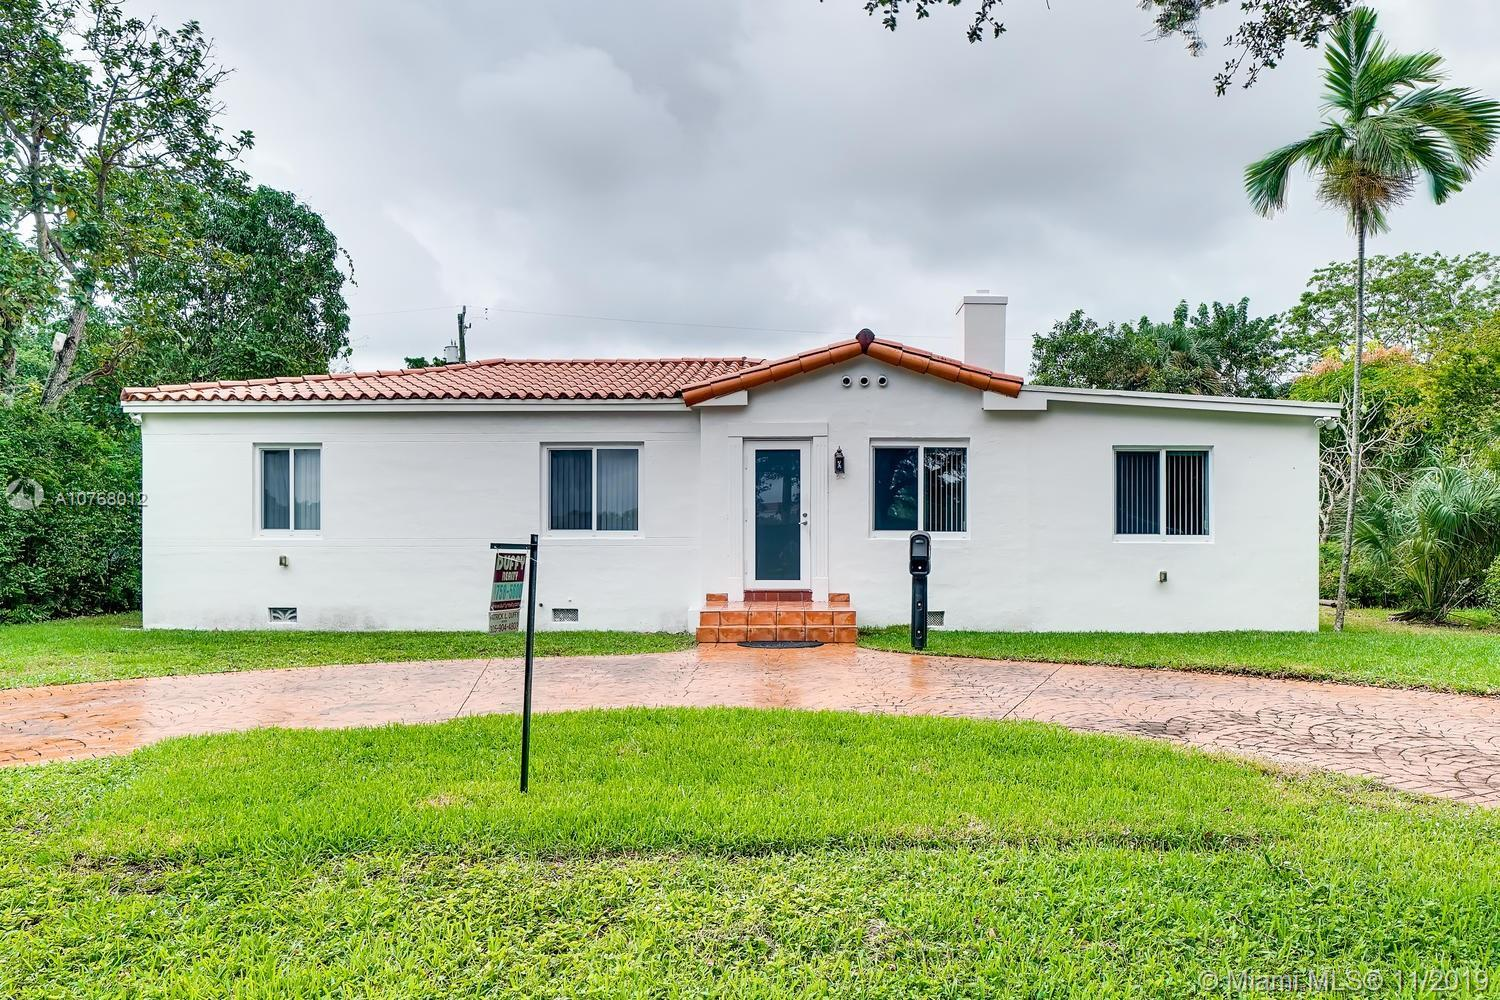 5 BED/2 BATH HOME BESIDE BARRY UNIVERSITY. RECENTLY UPDATED WITH NEW KITCHEN, NEW BATHROOM, NEW HURR